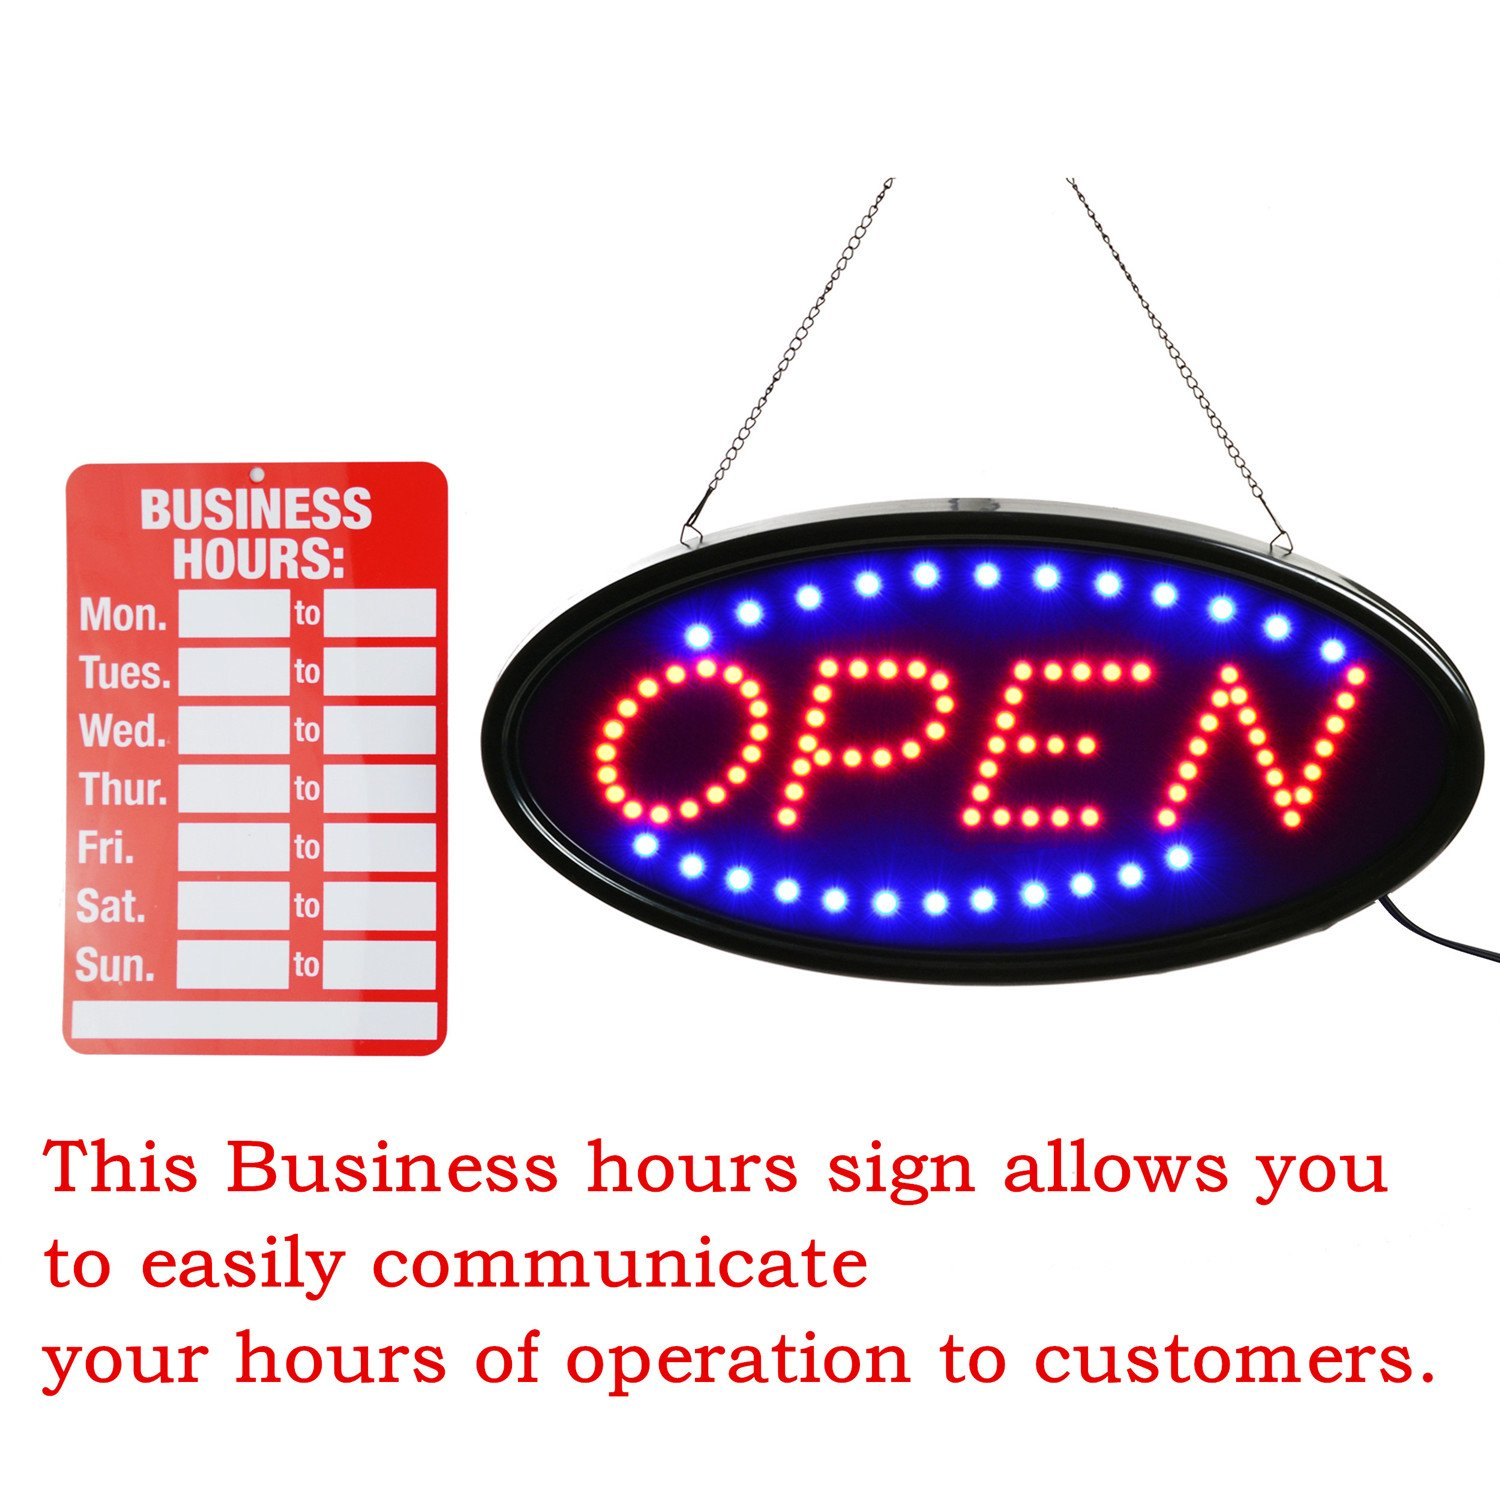 Open LED Sign,LED business open sign advertisement board Electric Display Sign,Light Up Sign 18.9''x9.84'' Flashing & Steady light, for business, walls, window, shop, bar, hotel (Blue+Red) by Datedirect (Image #2)